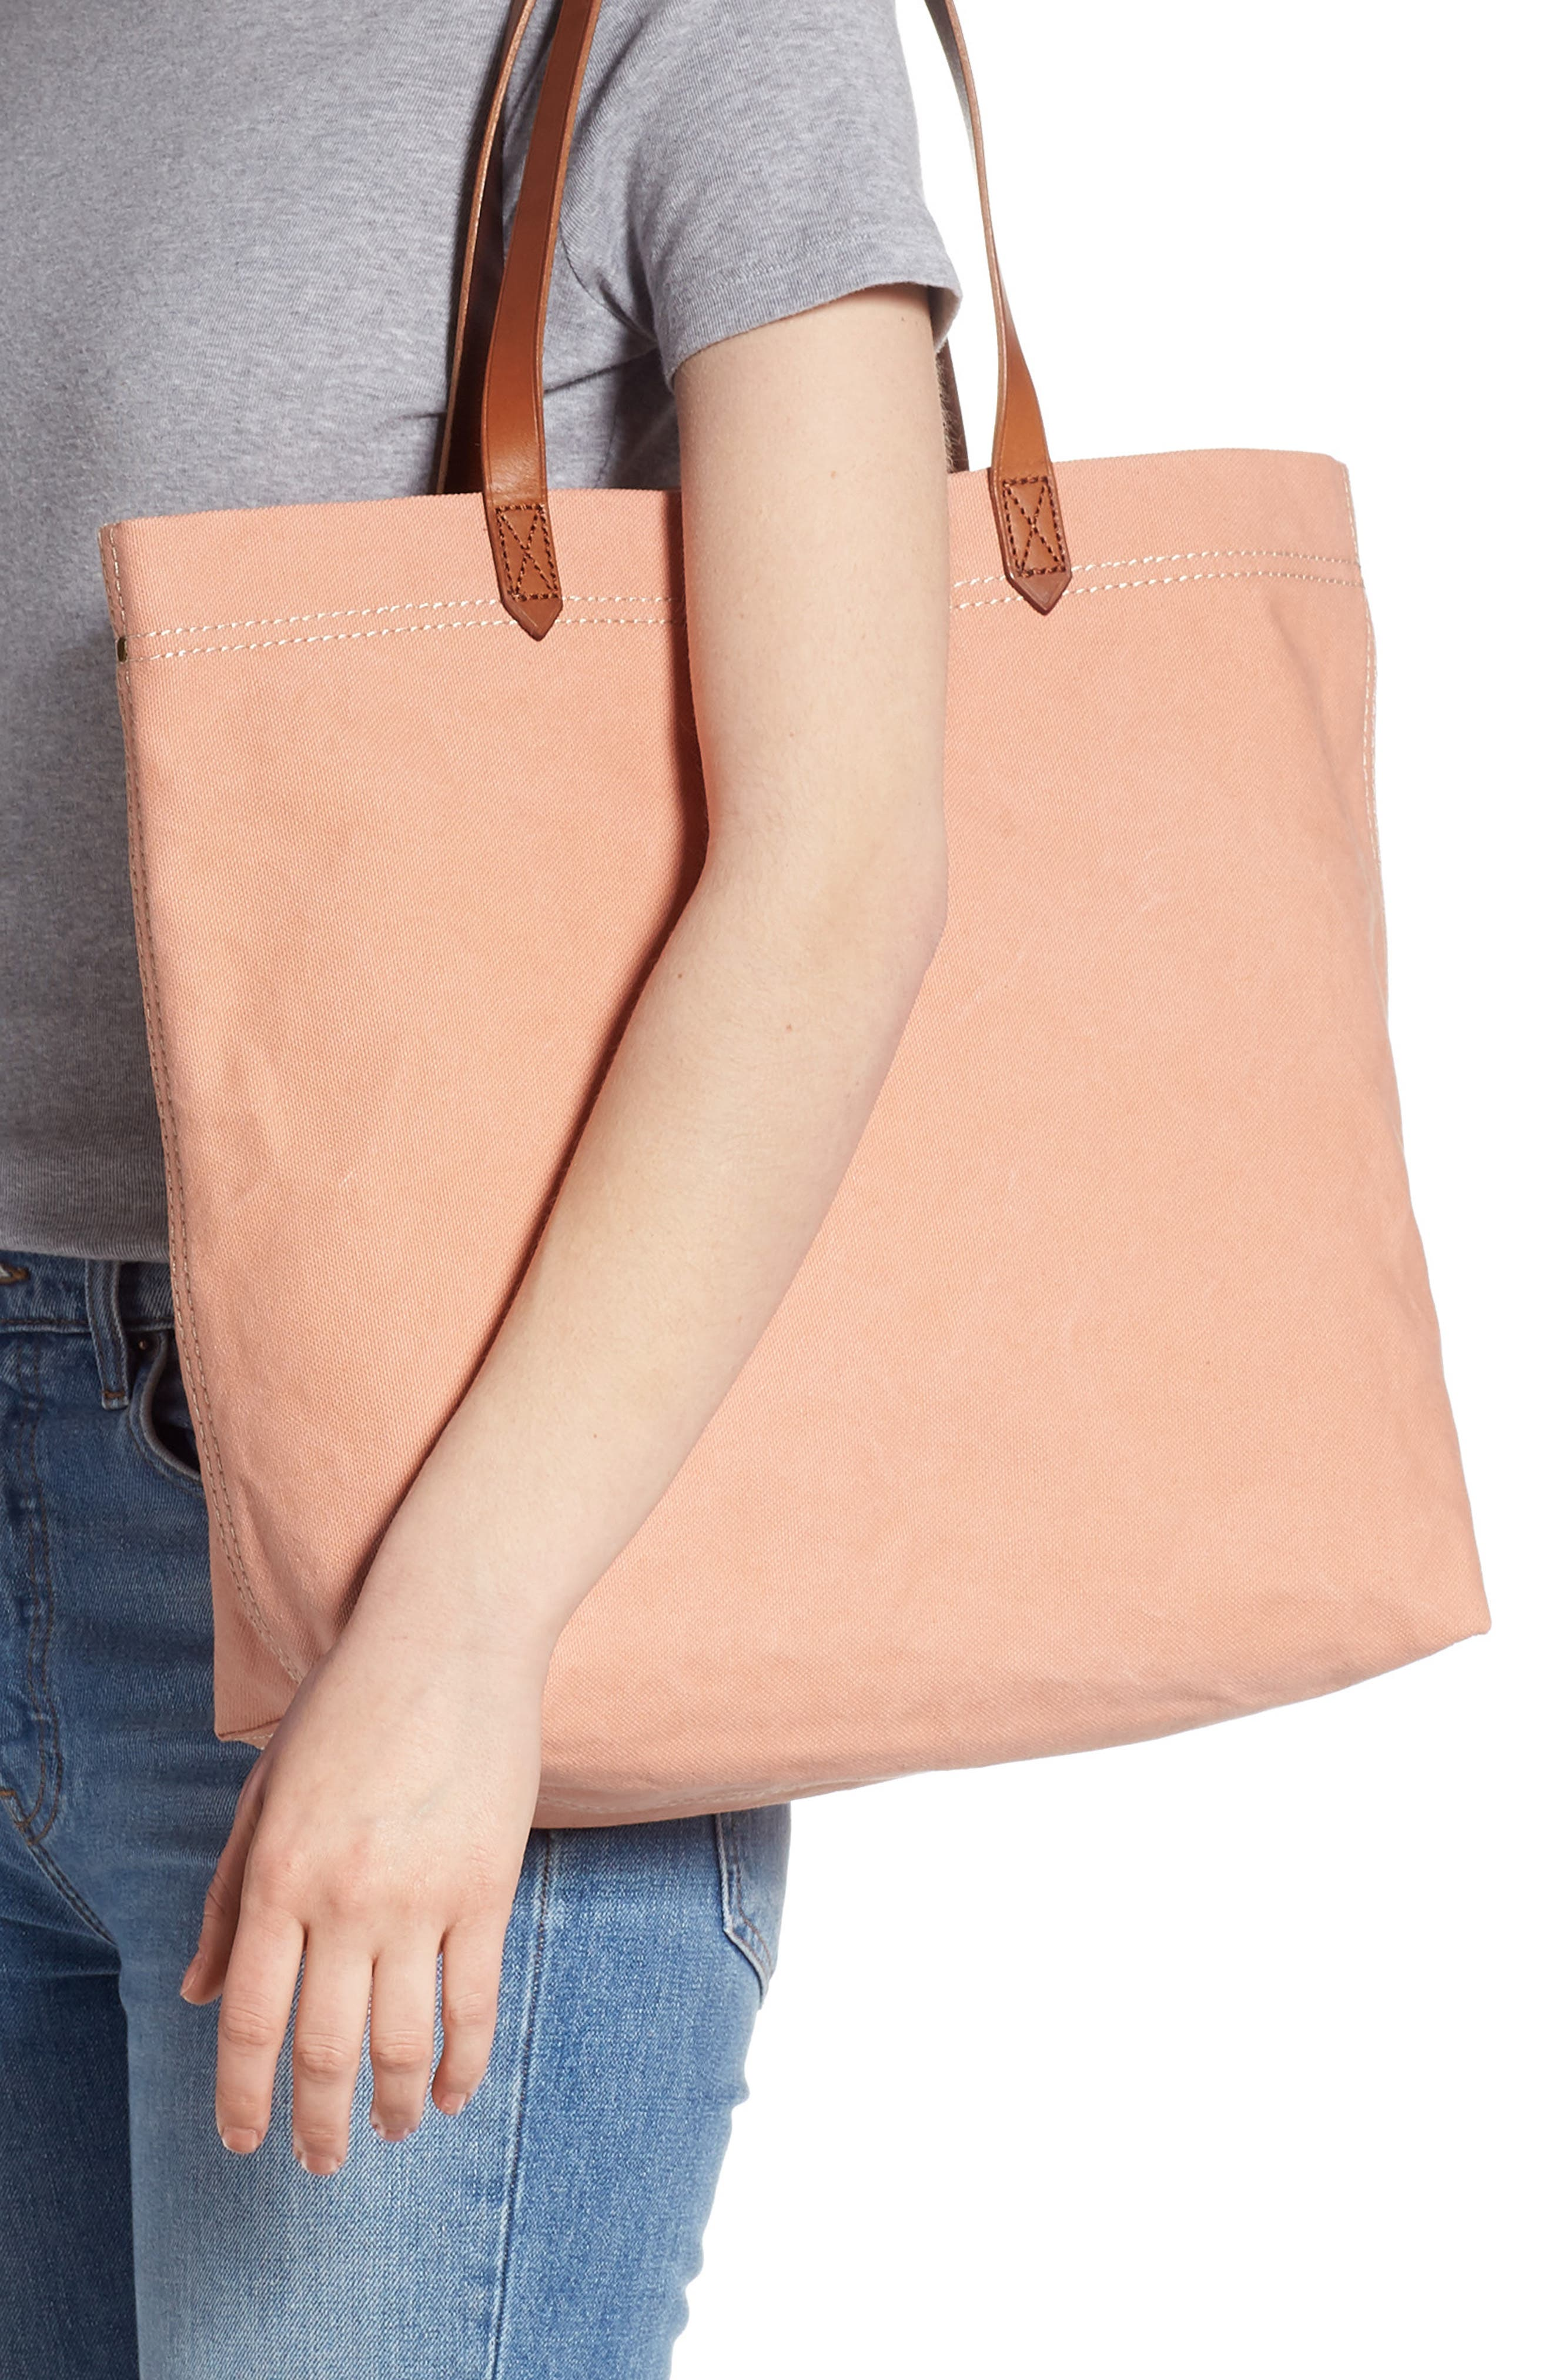 MADEWELL, Canvas Transport Tote, Alternate thumbnail 2, color, ANTIQUE CORAL